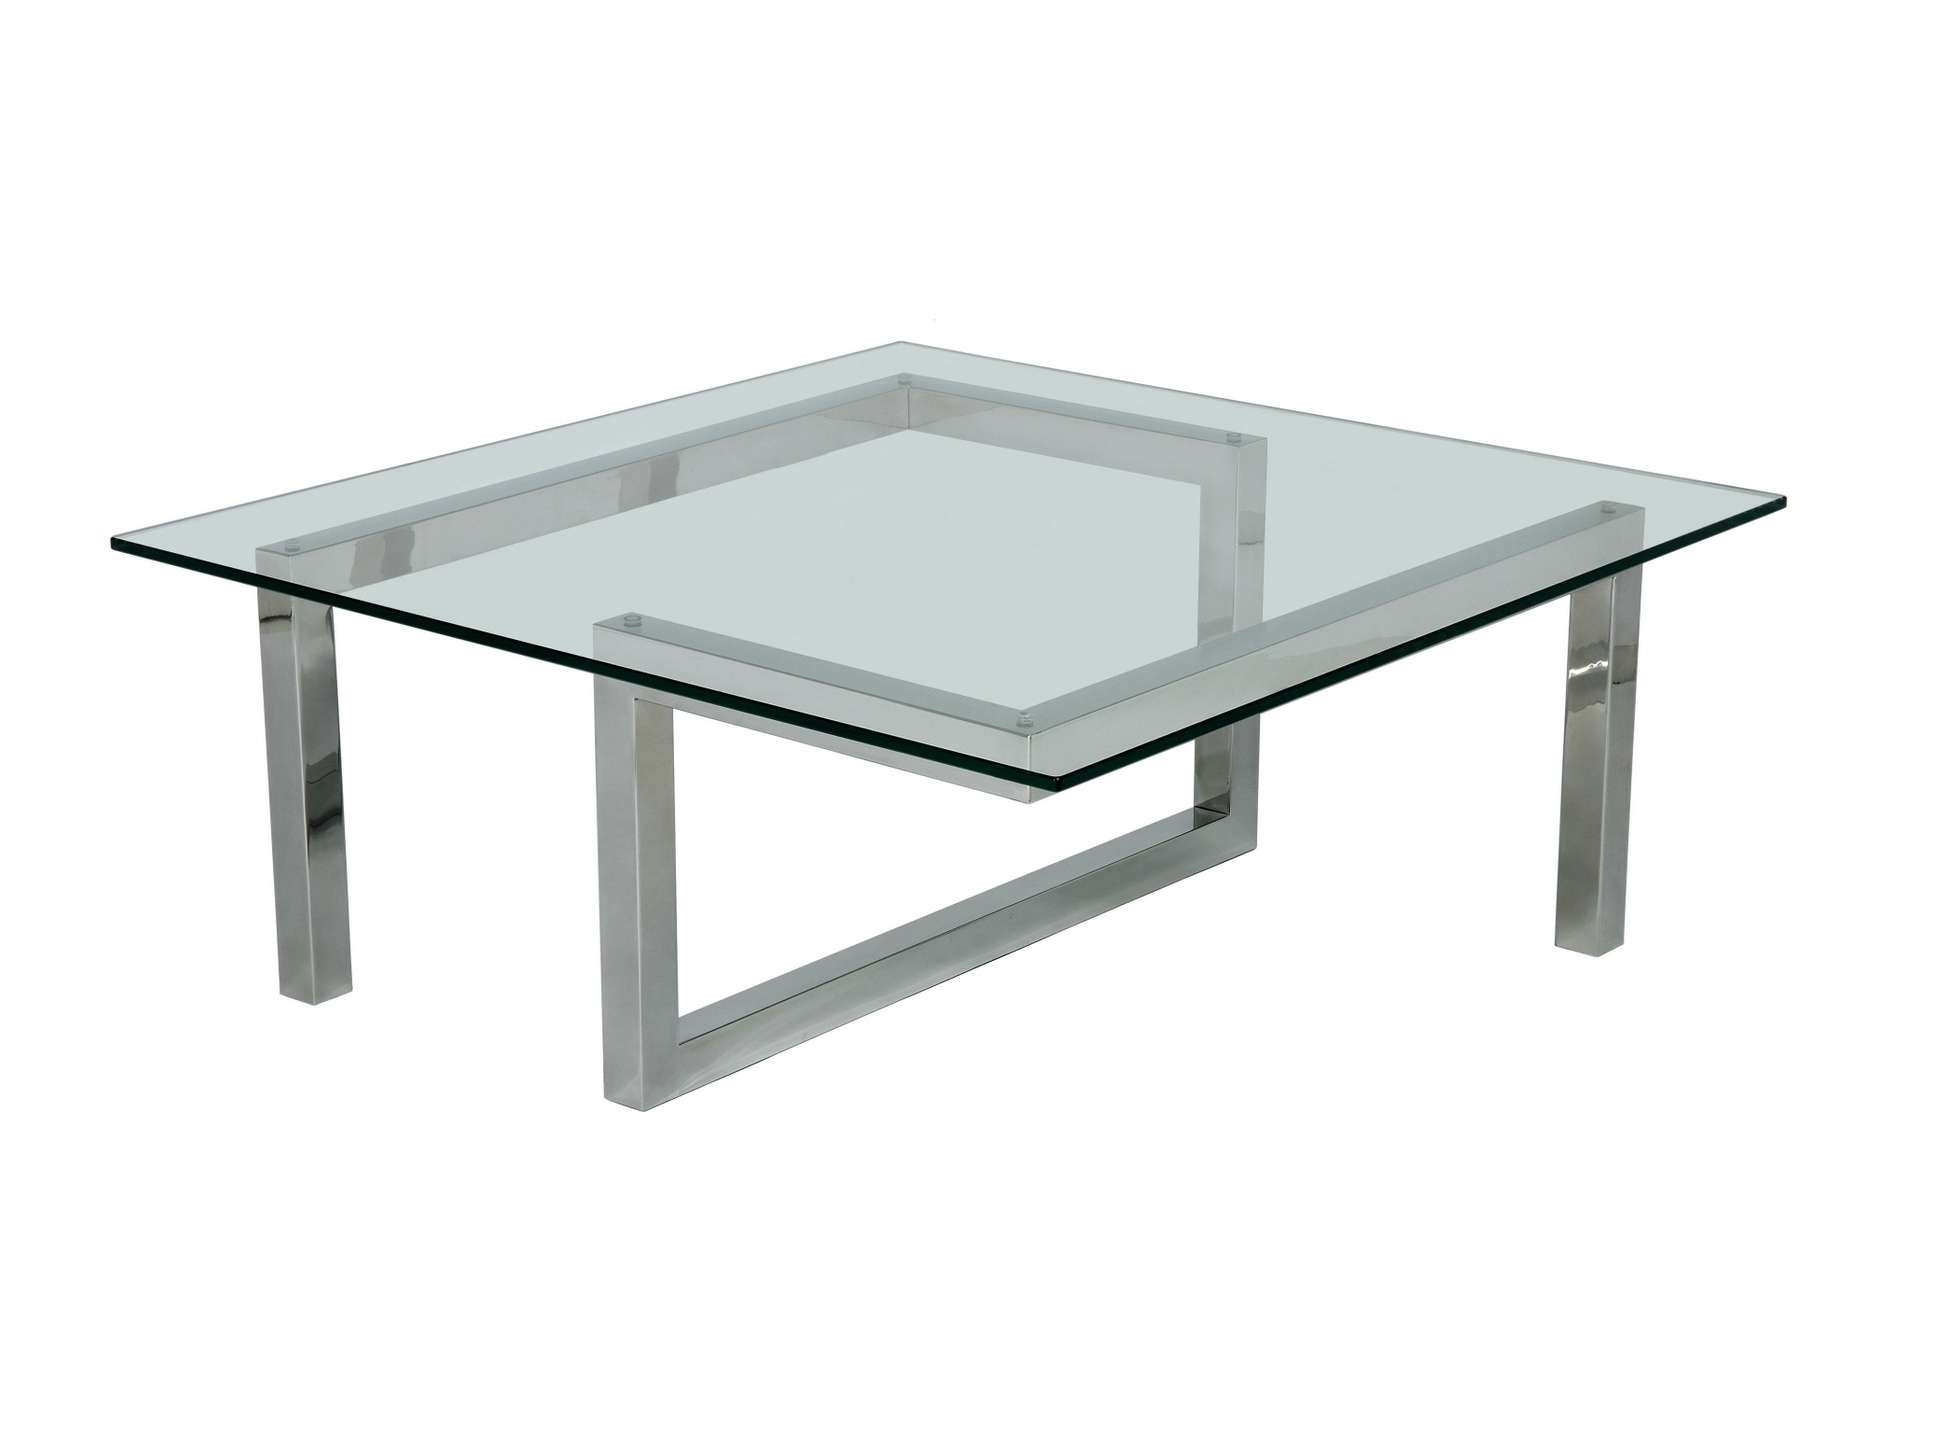 Trendy Steel And Glass Coffee Tables Within Decorations : Modern Glass Top Coffee Tables With Metal Base (View 17 of 20)